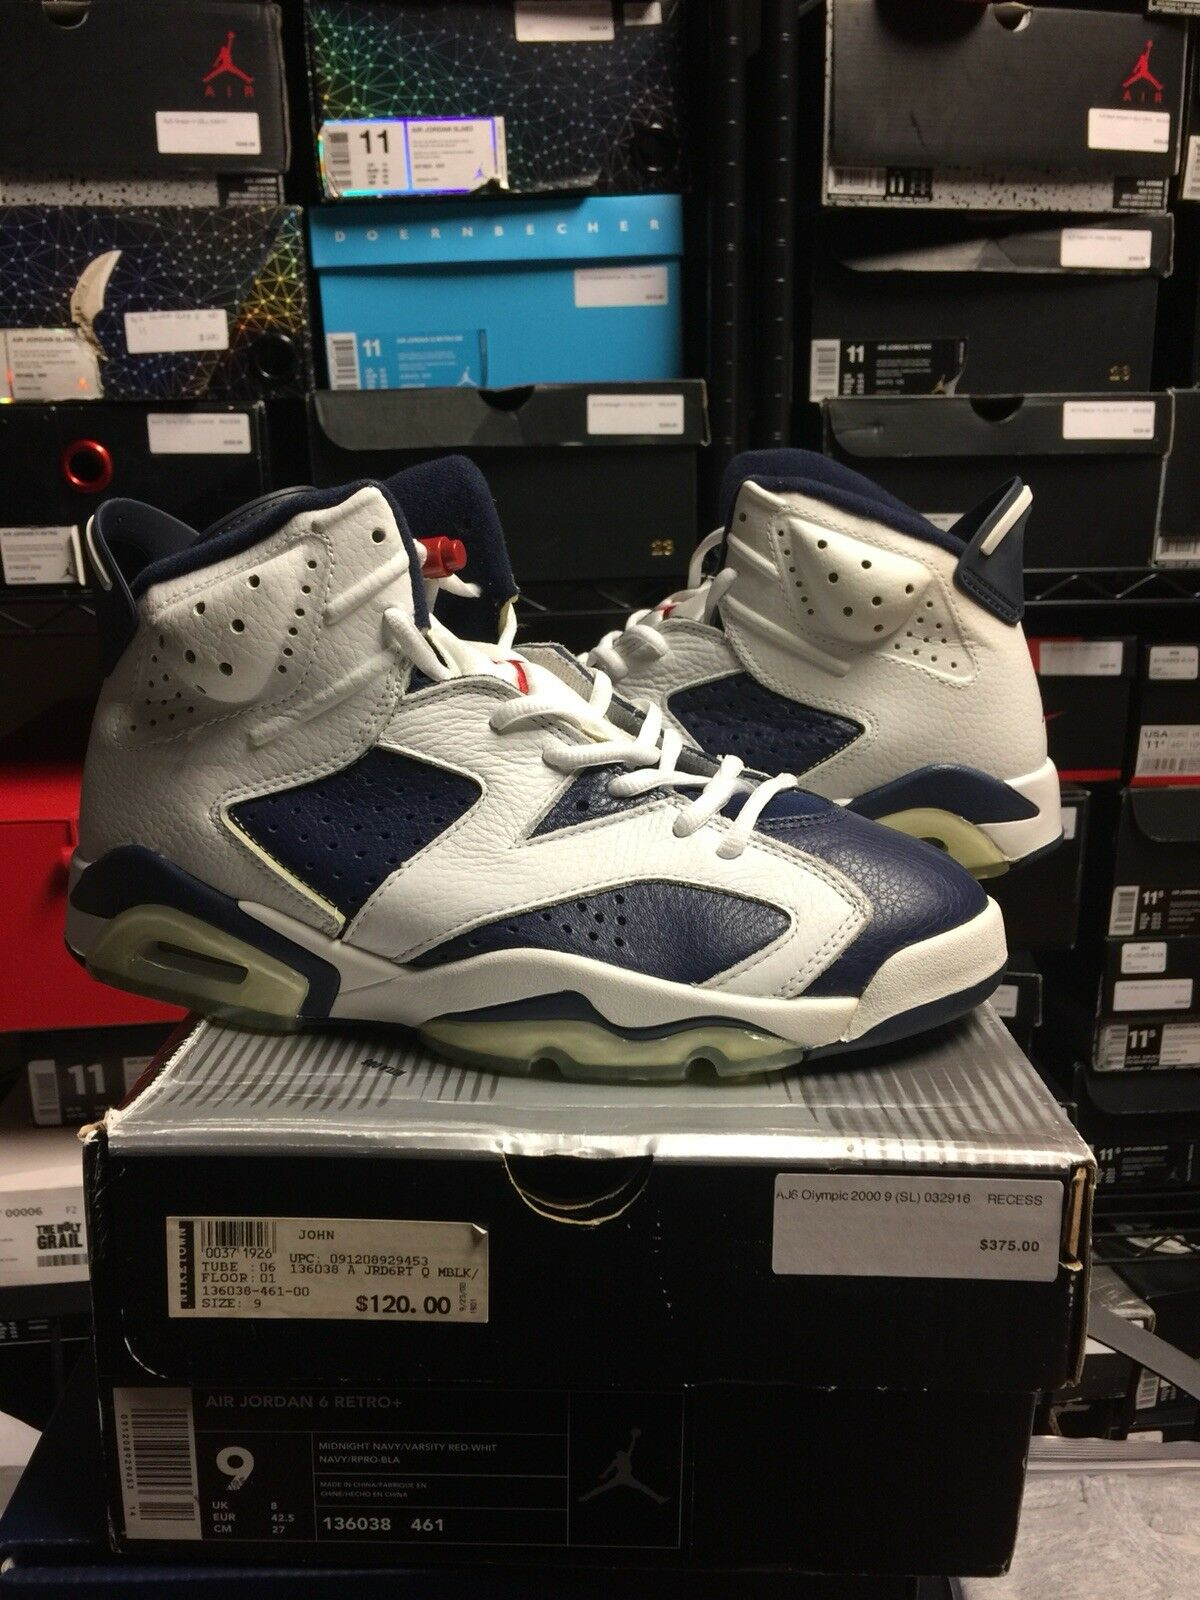 BRAND NEW NIKE AIR JORDAN OLYMPIC 6 VI 2000 MIDNIGHT NAVY Size 9